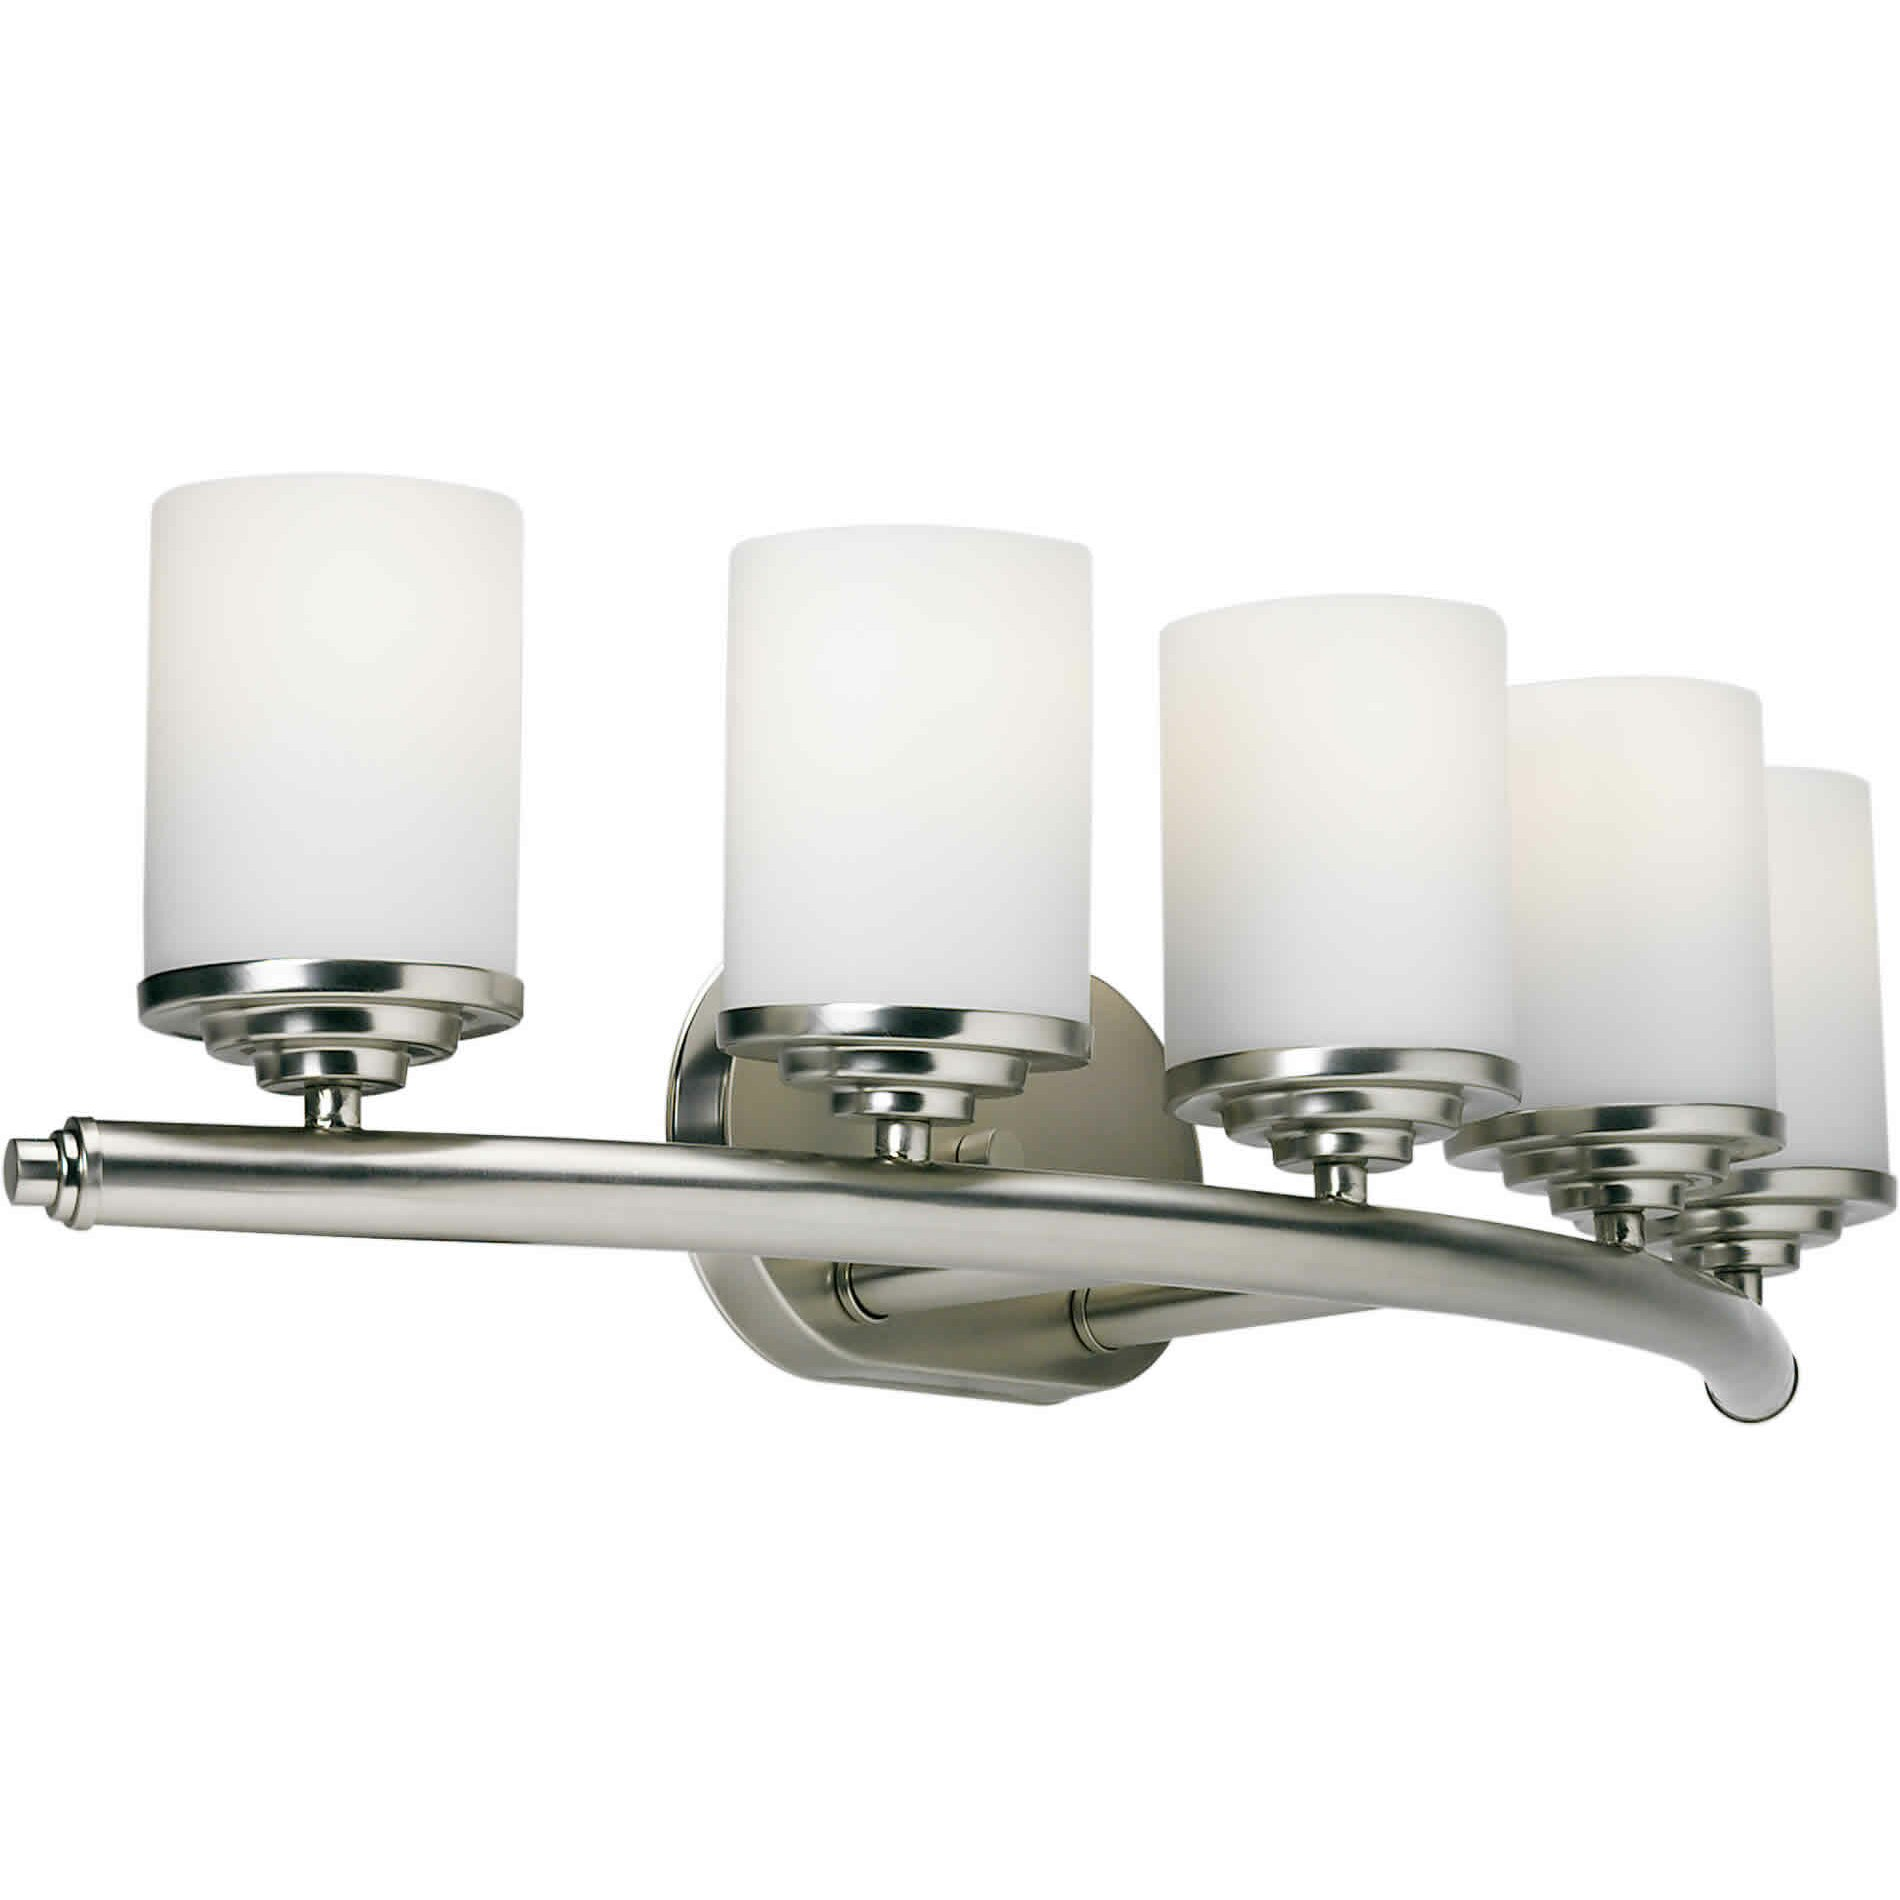 Wayfair Bathroom Vanity >> Forte Lighting 5 Light Vanity Light & Reviews | Wayfair